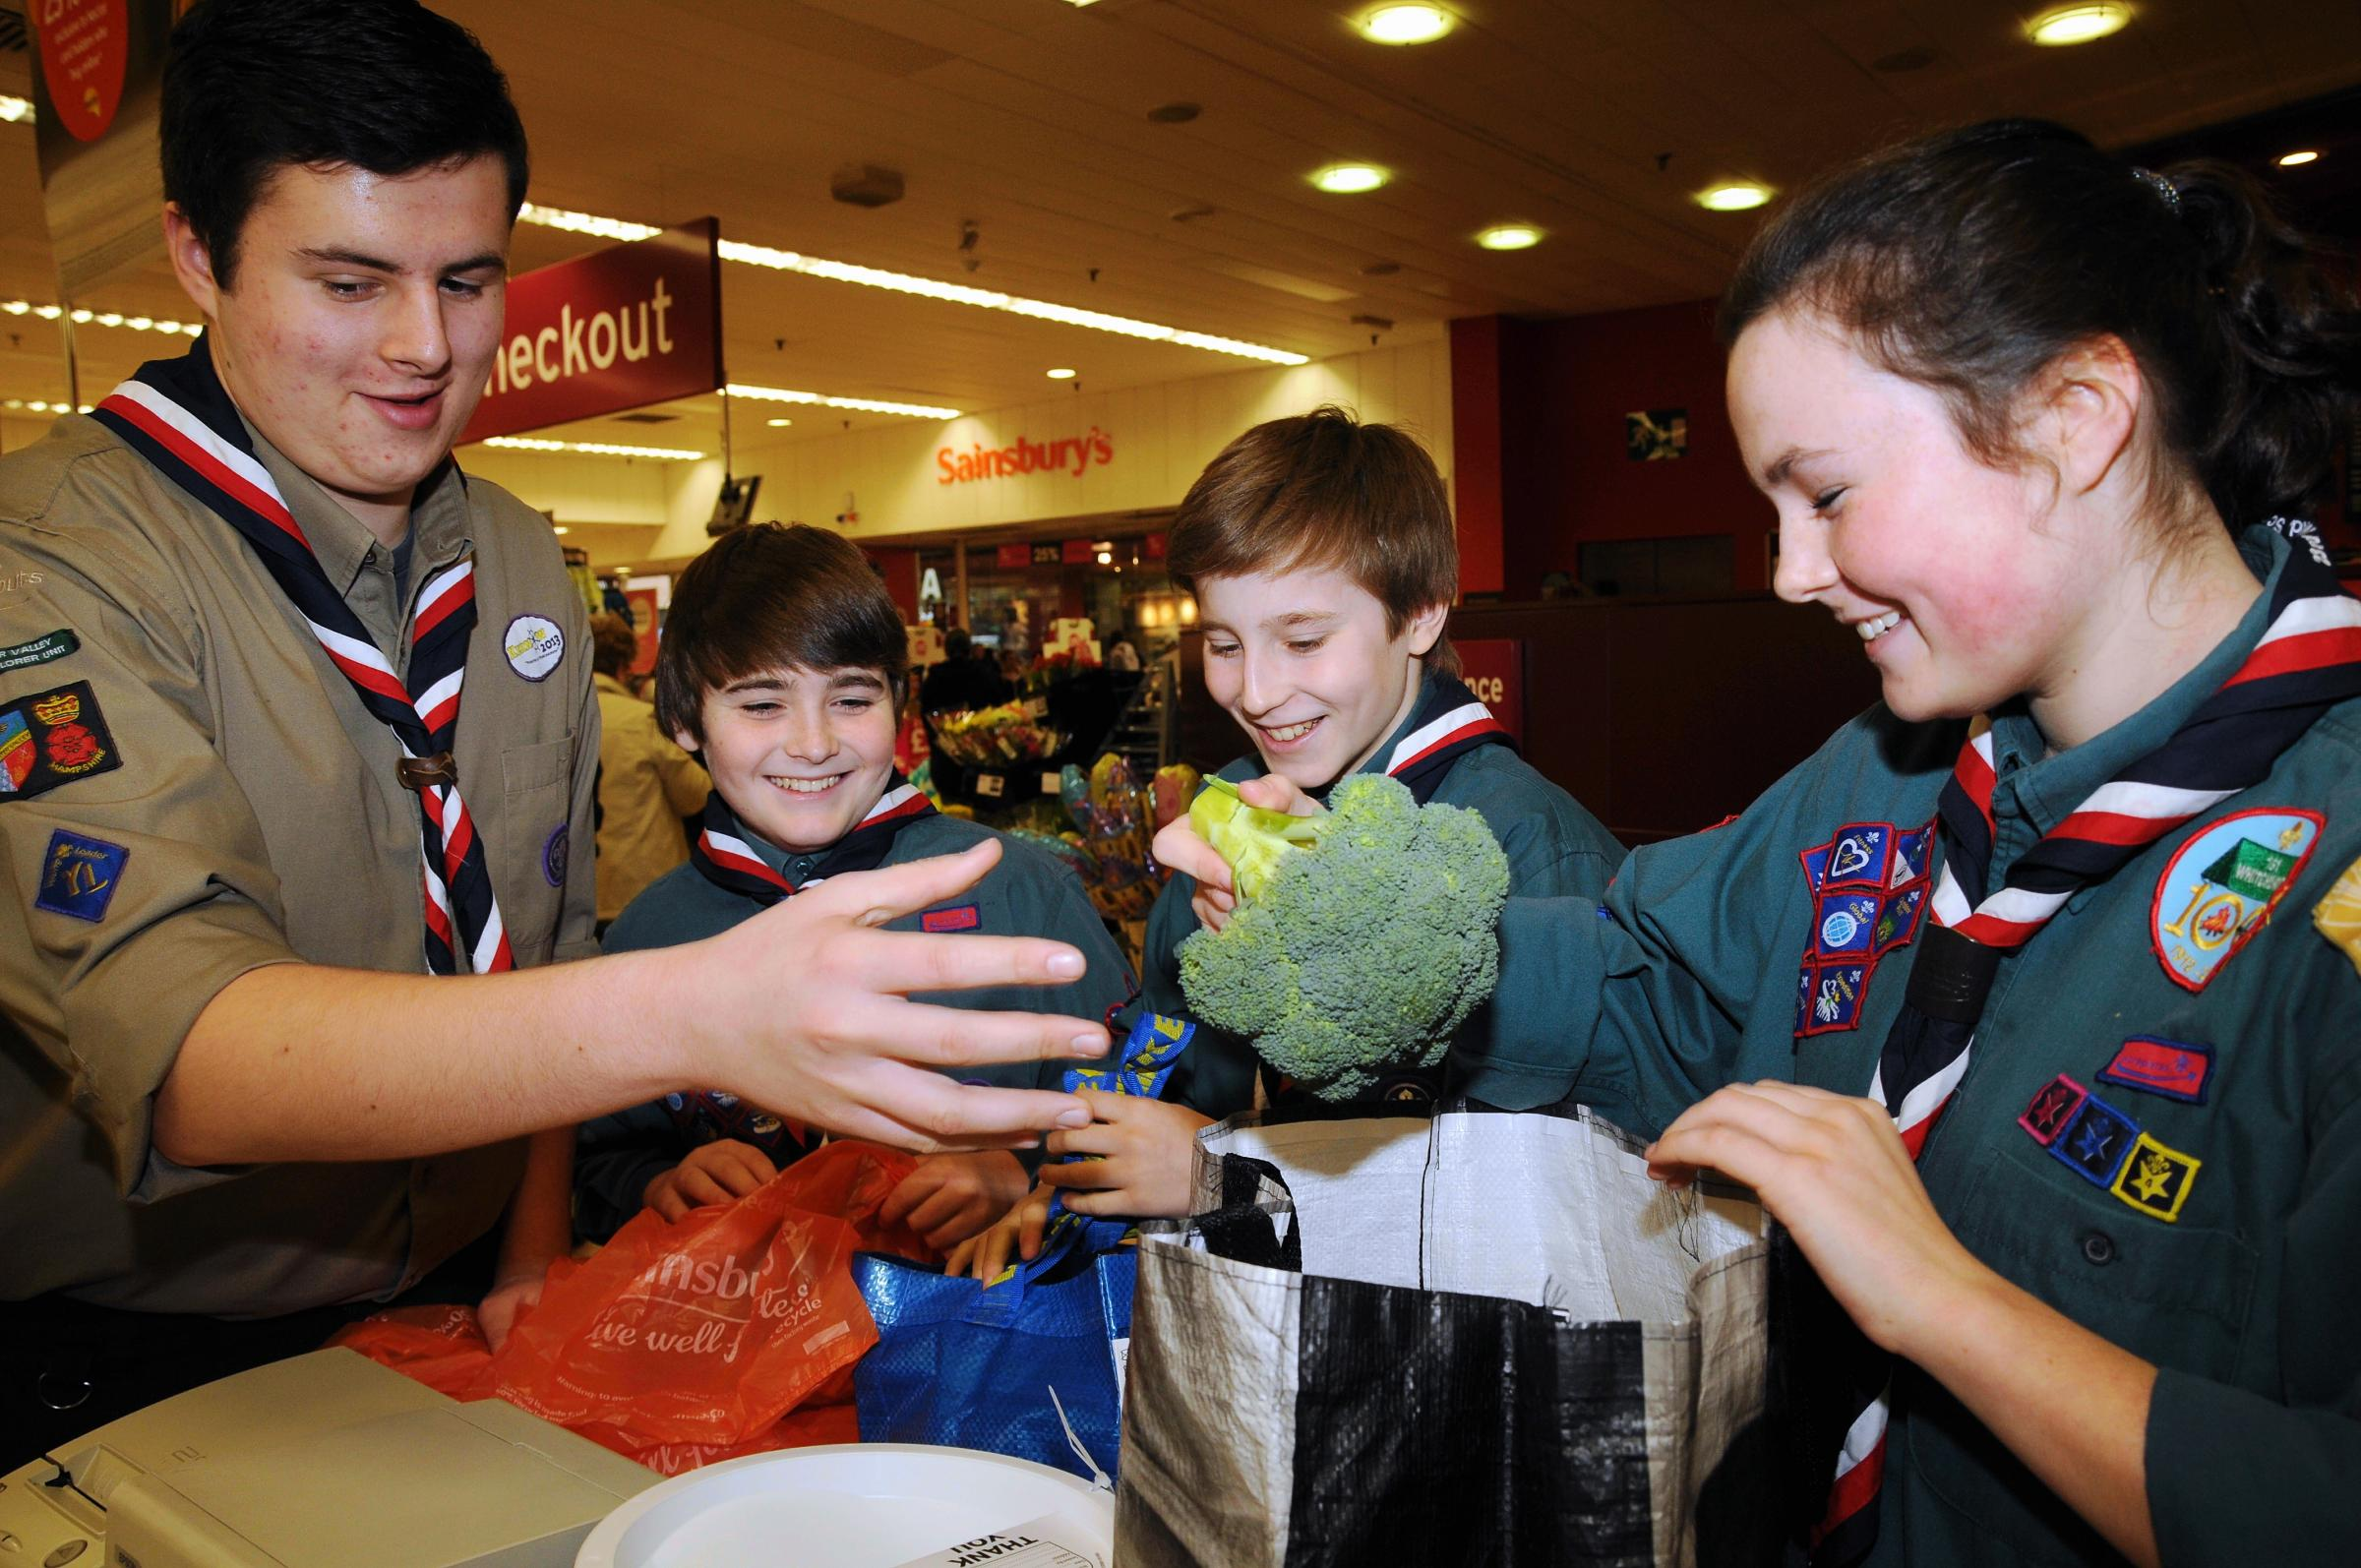 Scouts help to pack shopping at Sainsbury's in Basingstoke.